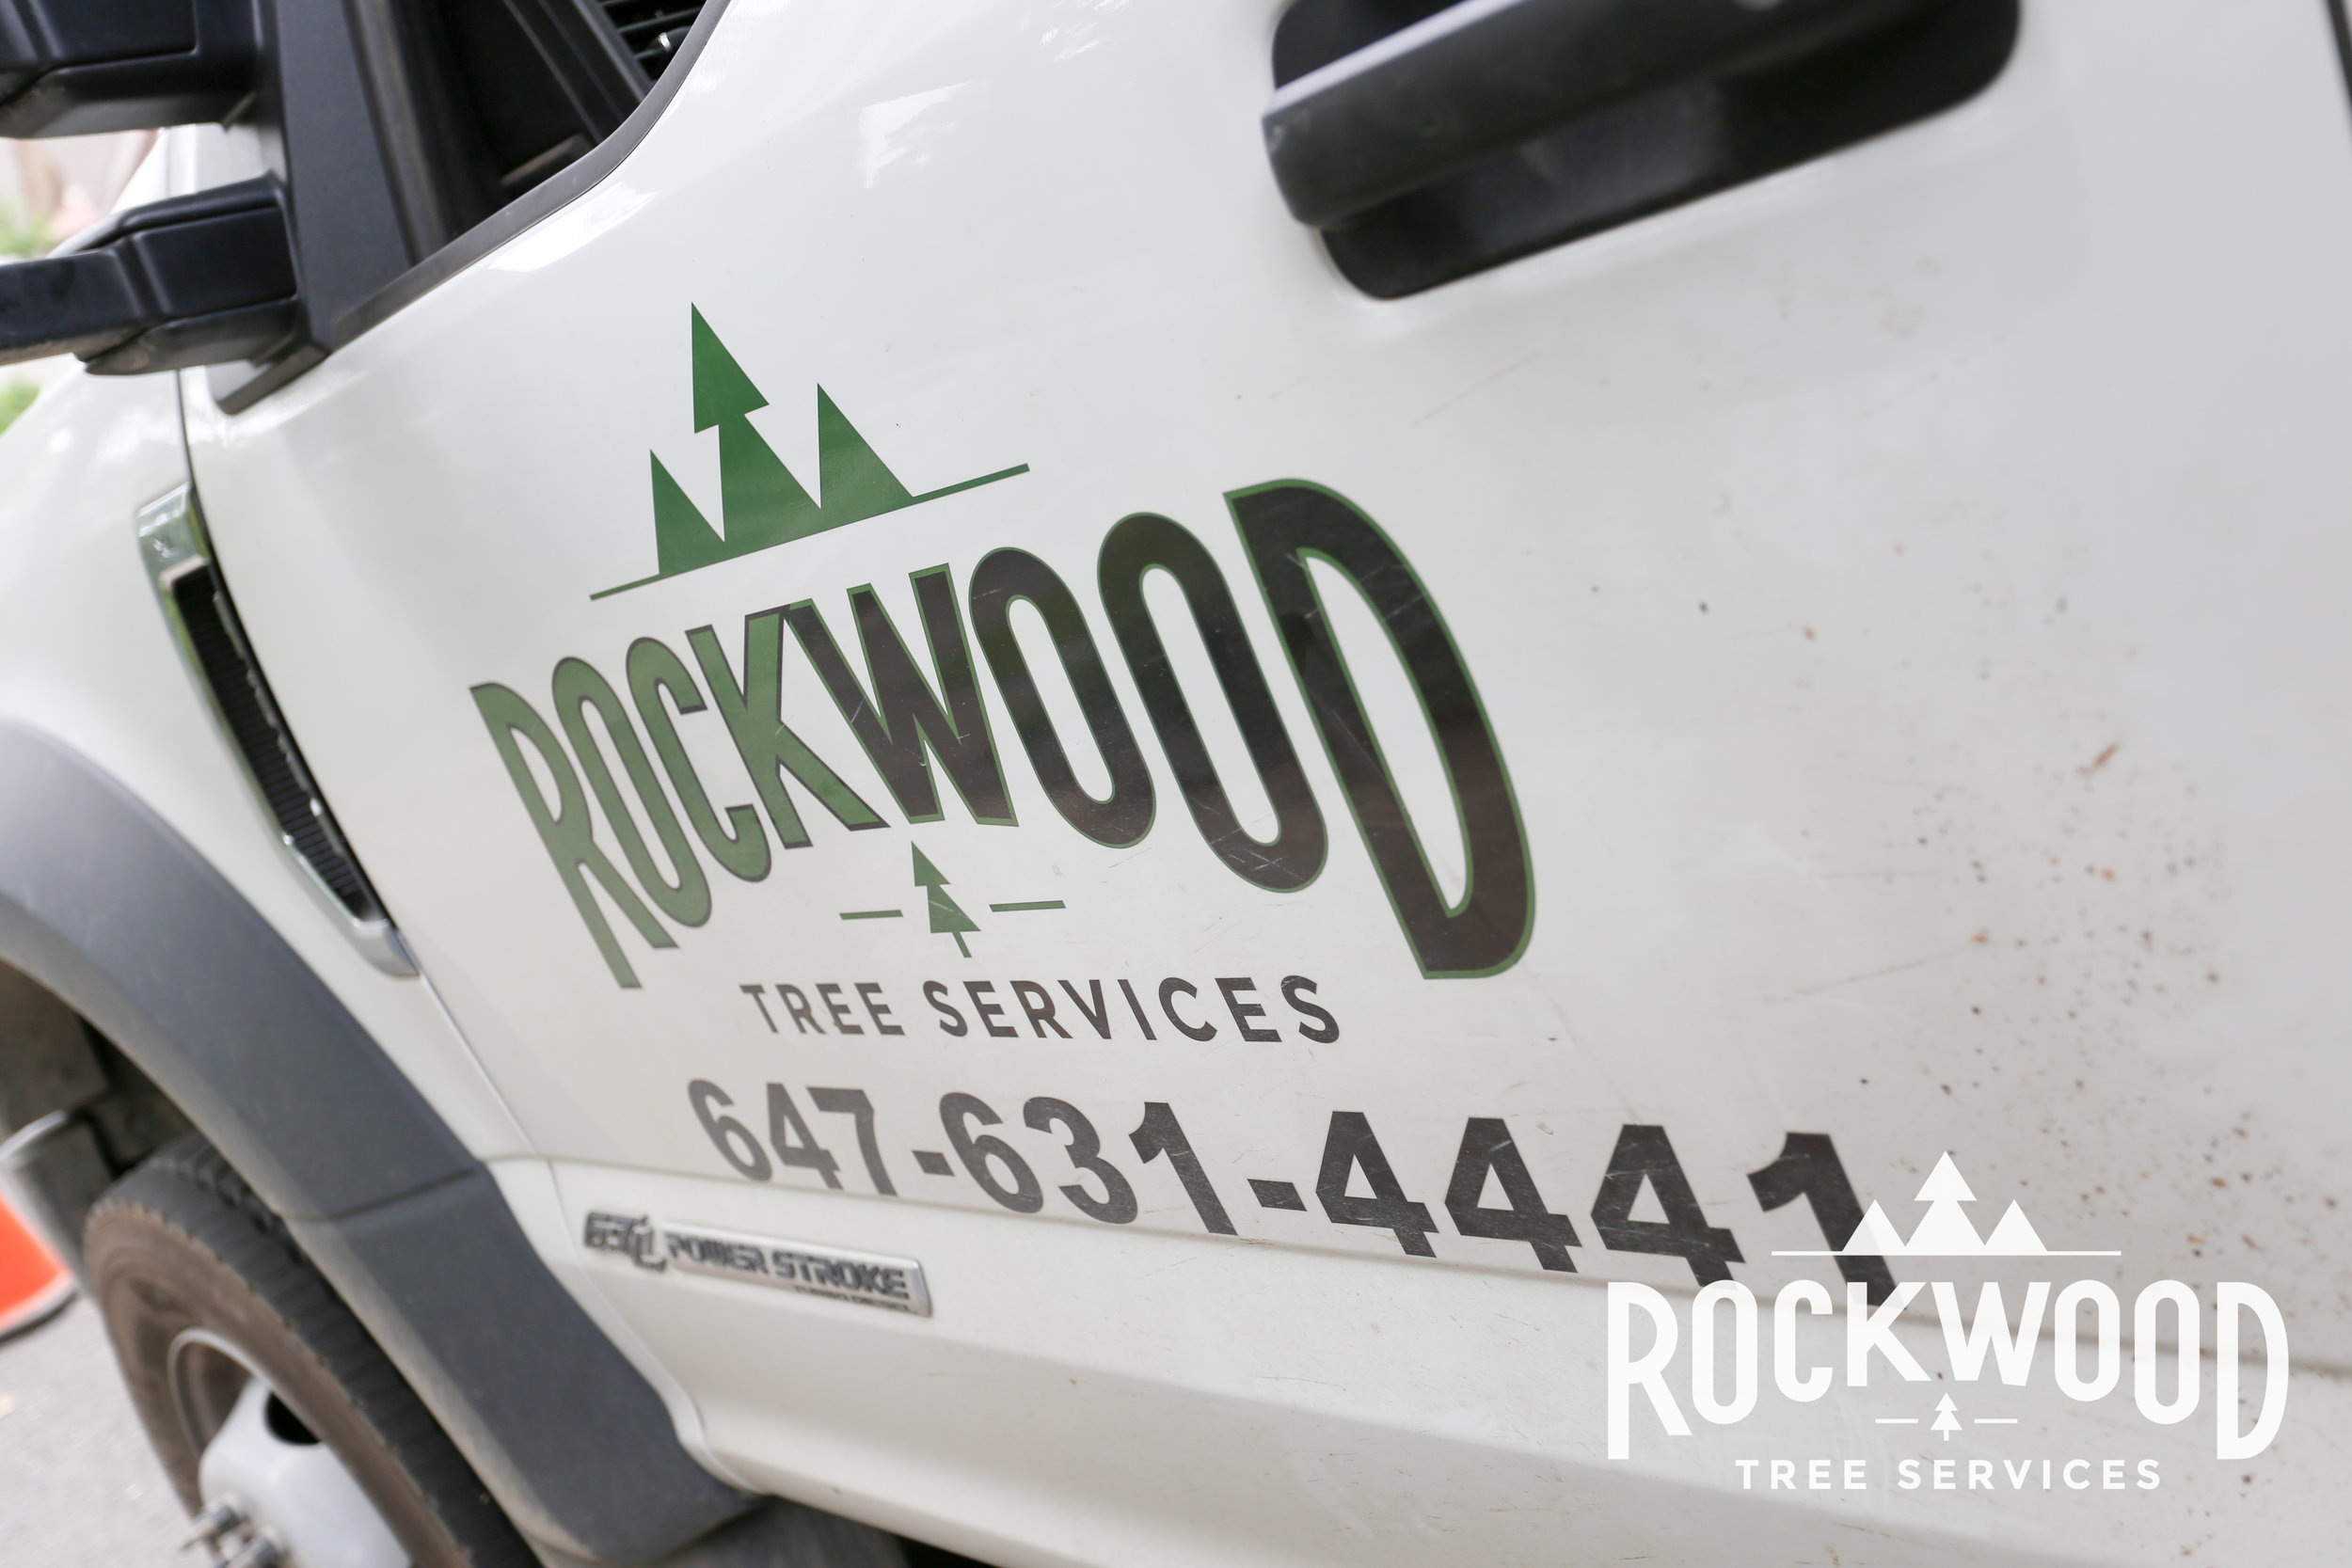 High quality, friendly service  Dylan gave us a free estimate right away. He and Dave pruned 2 large trees for us, proving that no job is too small for these expert arborists. They also advised us on the care of other trees and shrubs in our backyard. They were professional and courteous and absolutely knew what they were doing. We will certainly use them in the future. We would highly recommend this company.  -Dan M.4/14/2016